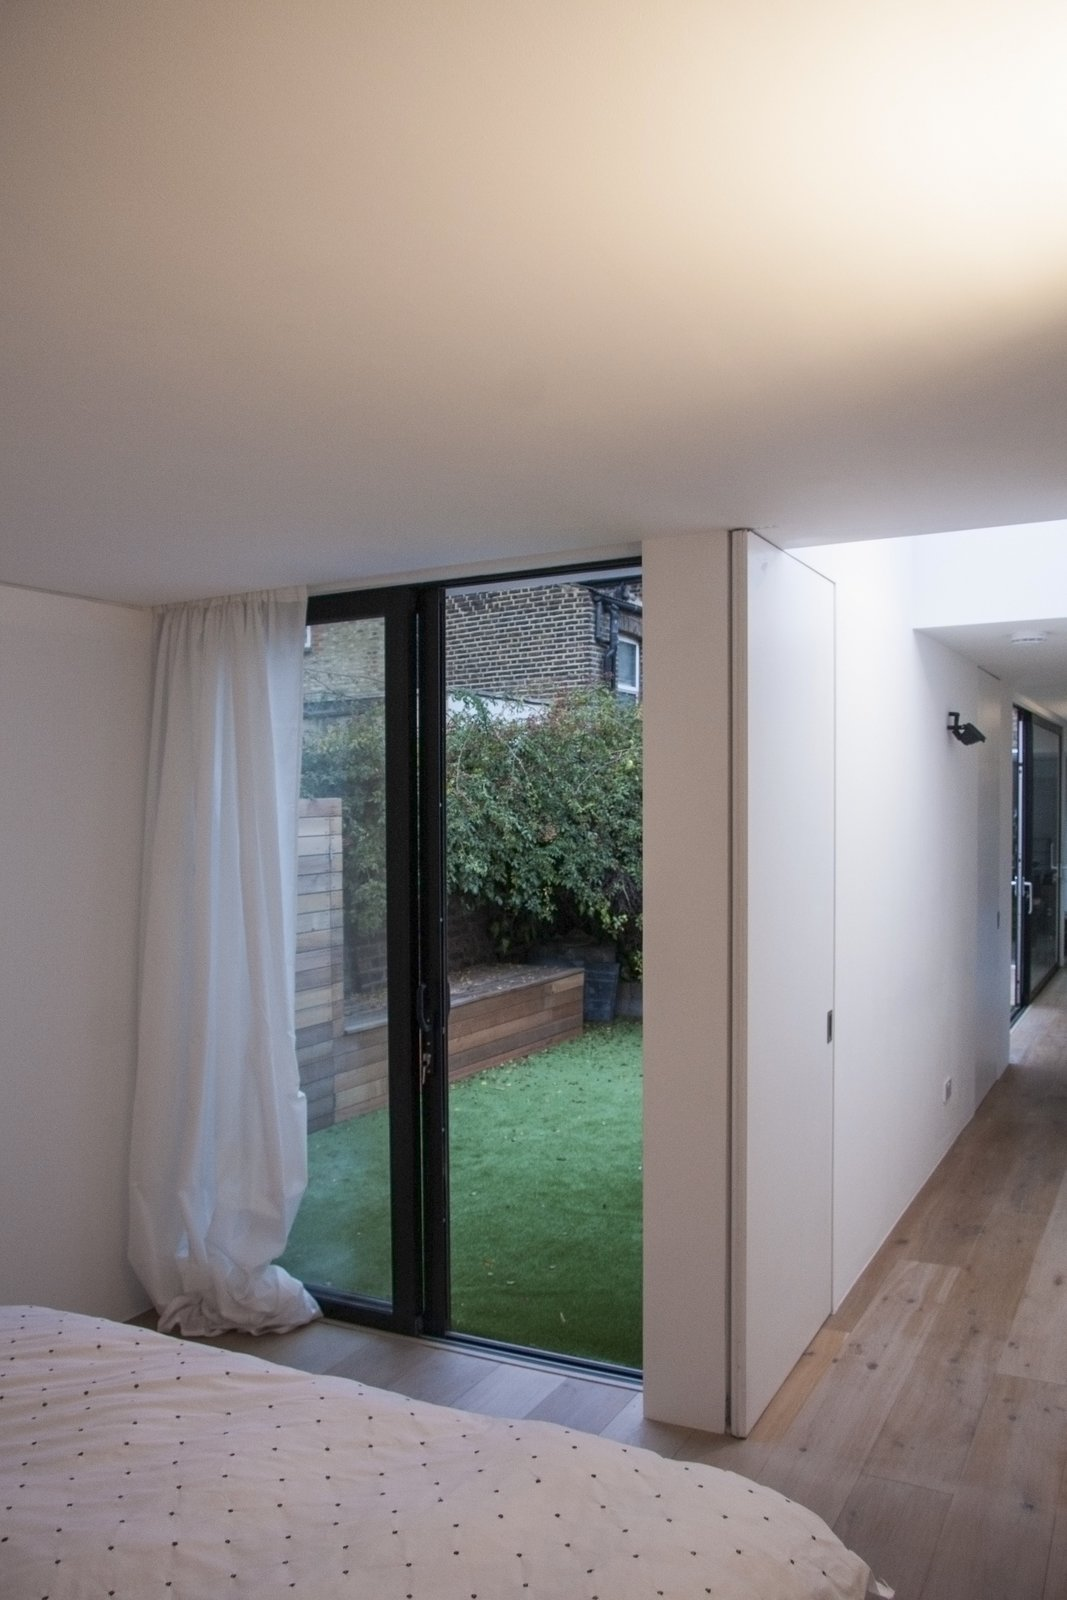 From the master bedroom one can look back down the length of the space through the internal kitchen link or the external courtyard.